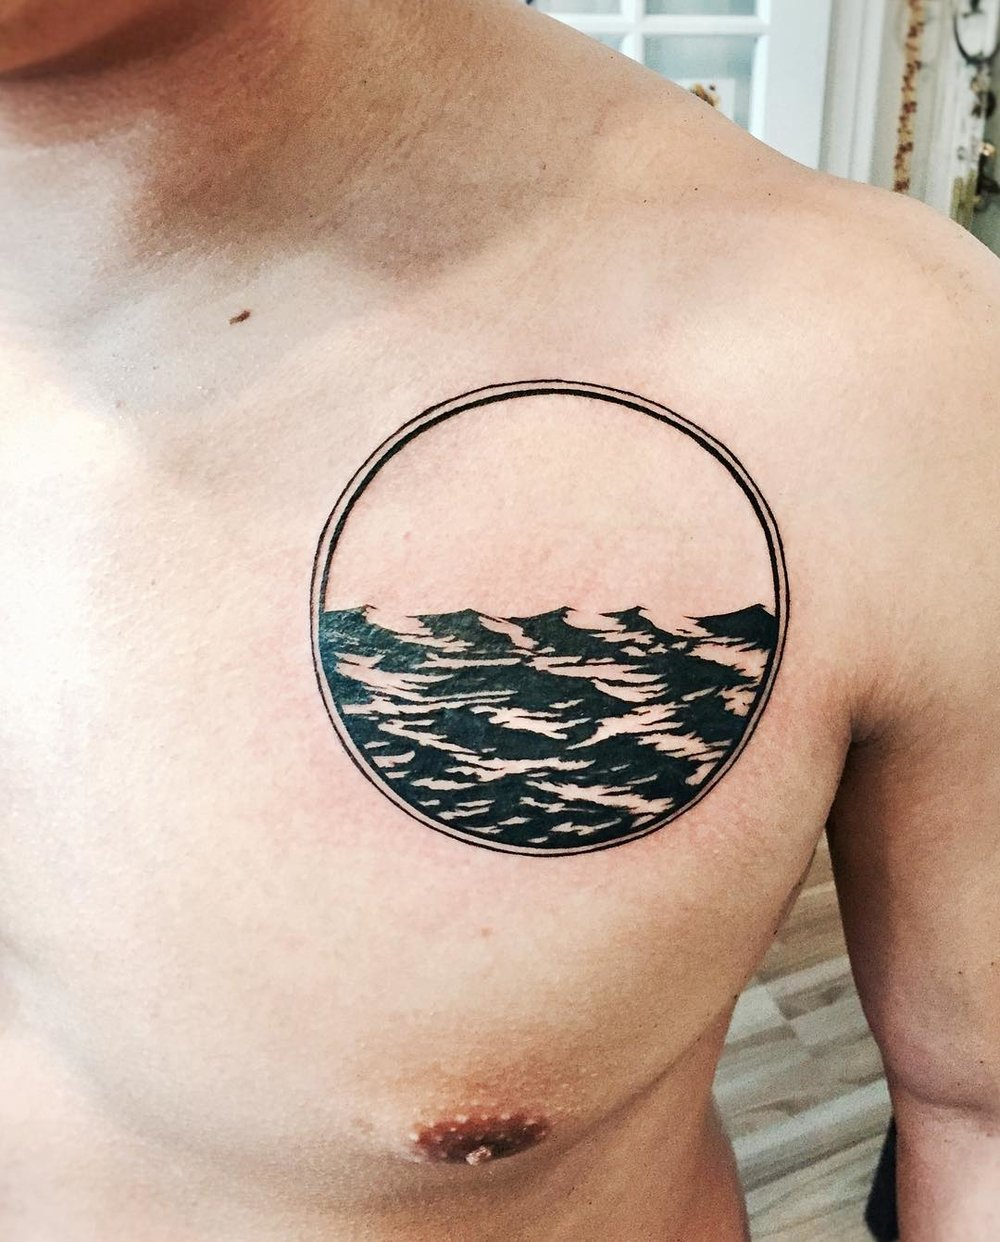 Ocean_waves_tattoo_I_did_while_back_on_Chase____.jpg